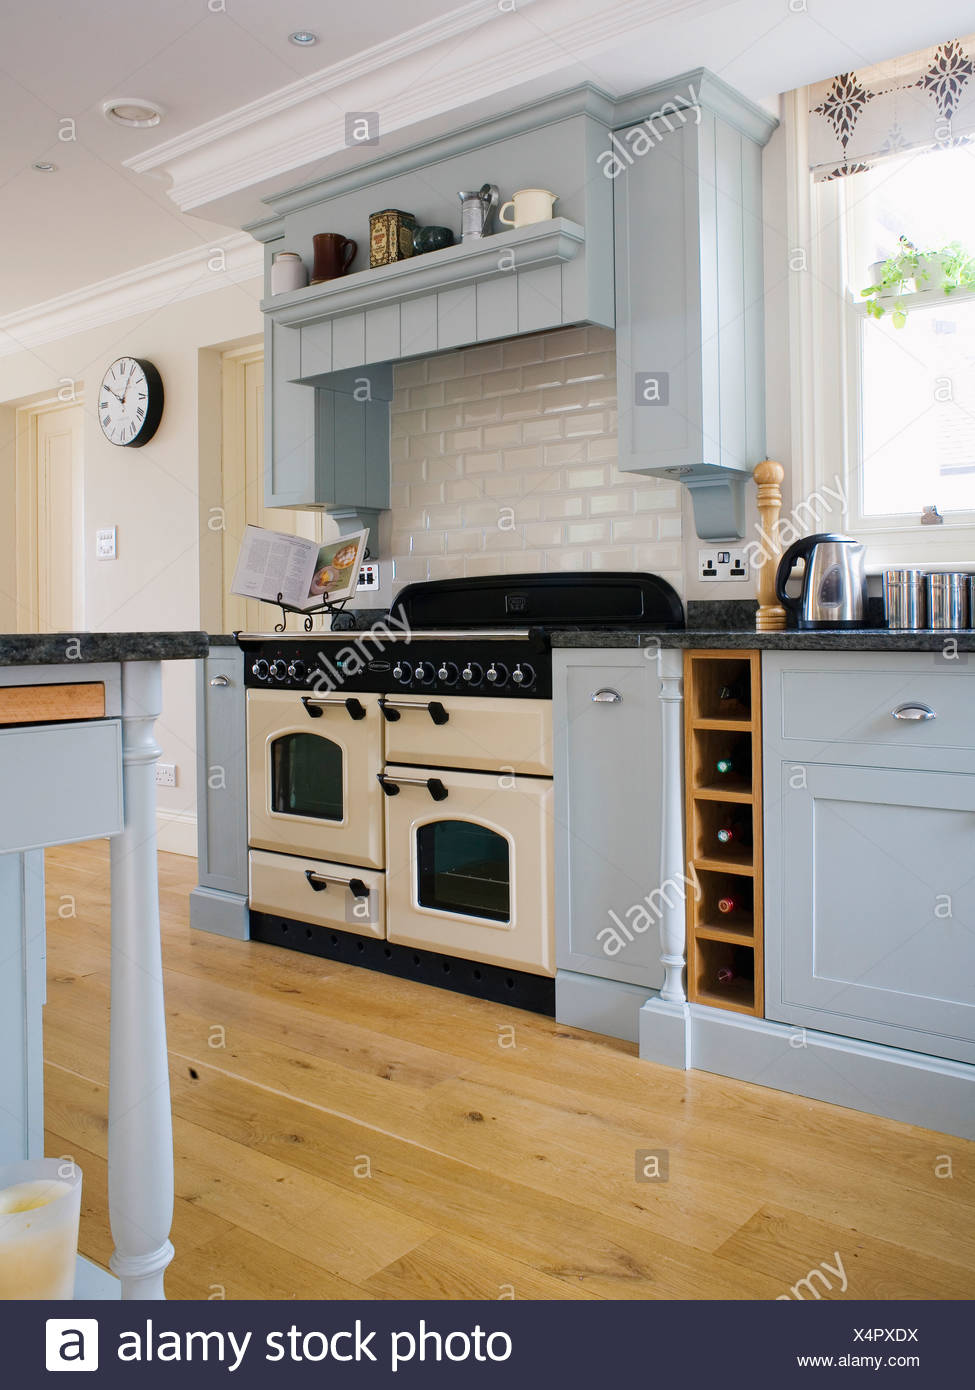 Pale Blue Kitchen Cream Range Oven In Kitchen With Pale Blue Fitted Units And Wooden